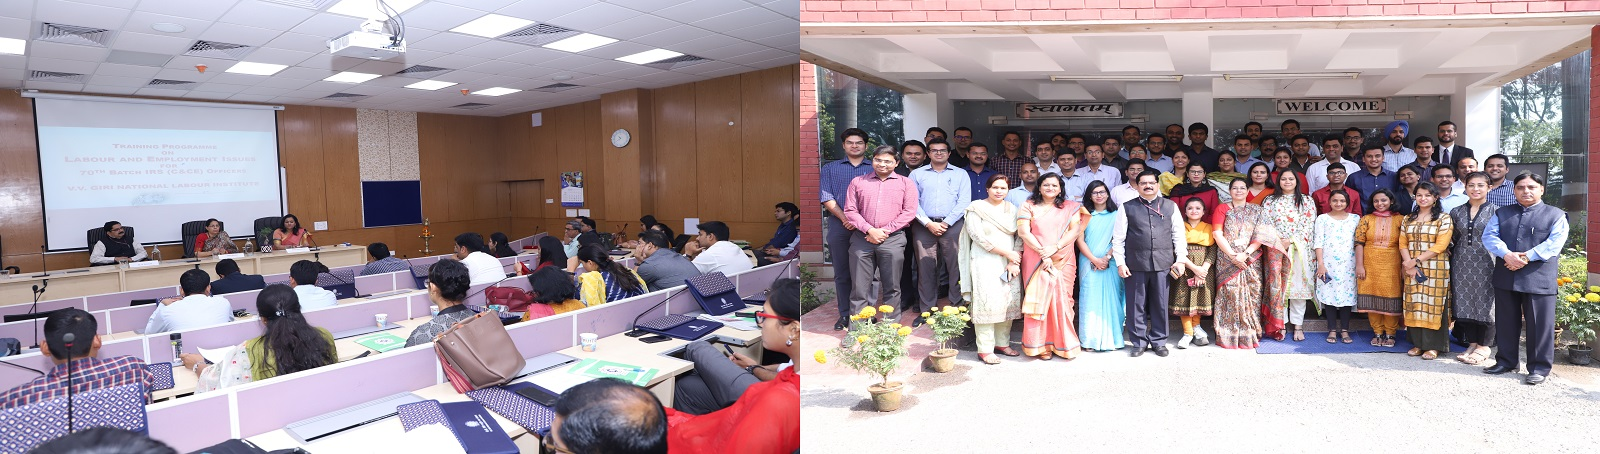 The V. V. Giri National Labour Institute conducted a one day Orientation Programme on Labour Employment Issues for the 70th batch of 52 IRS (C&CE) Officers on November 5, 2019. The Programme was inaugurated by Ms. Vibha Bhalla, IRS, Joint Secretary, Minis